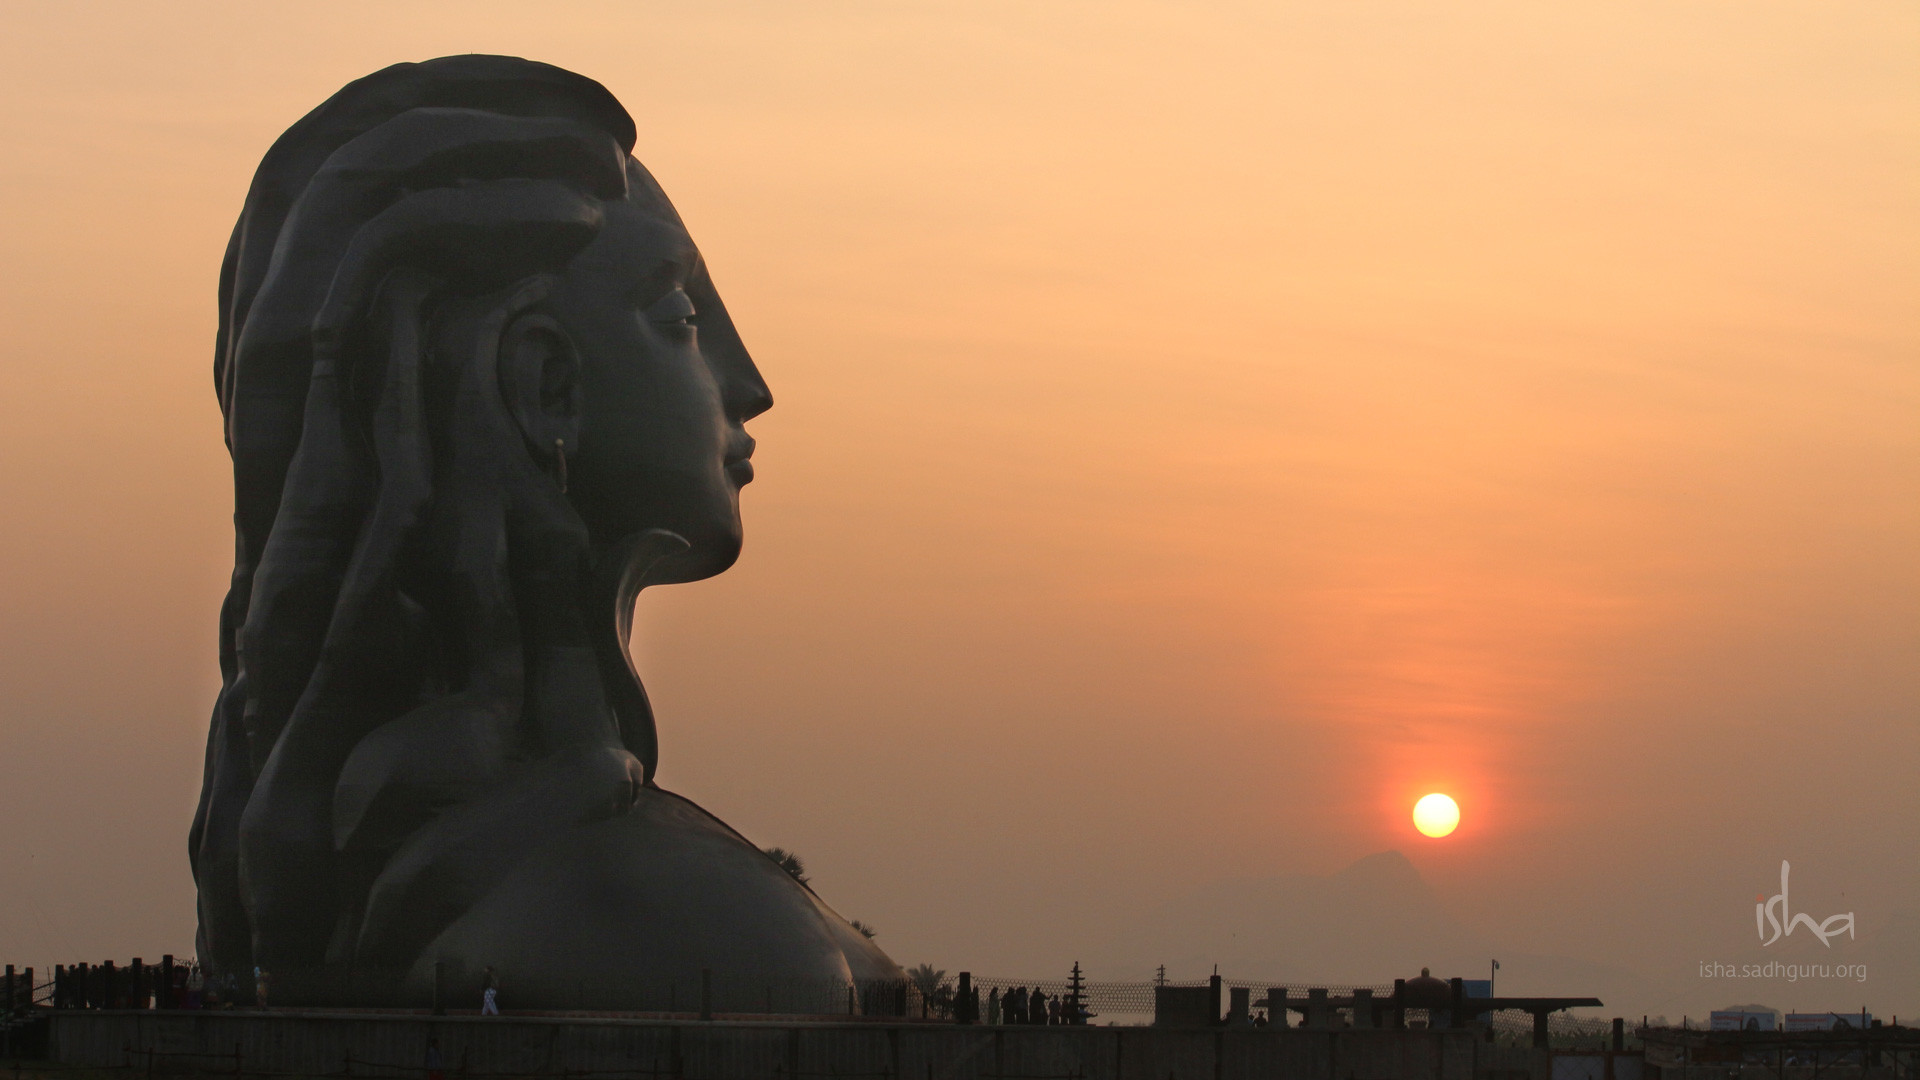 1920x1080 Mahashivratri Images - The Adiyogi During Sunrise HD